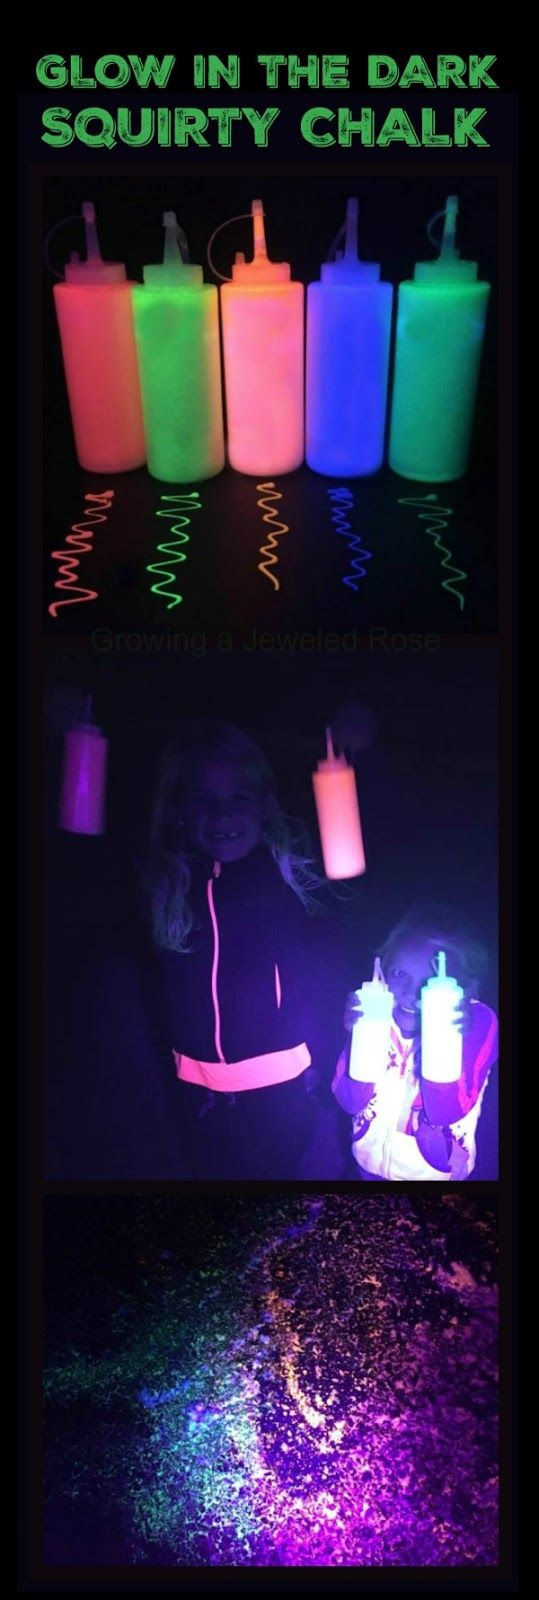 Glow in the Dark Squirty Chalk